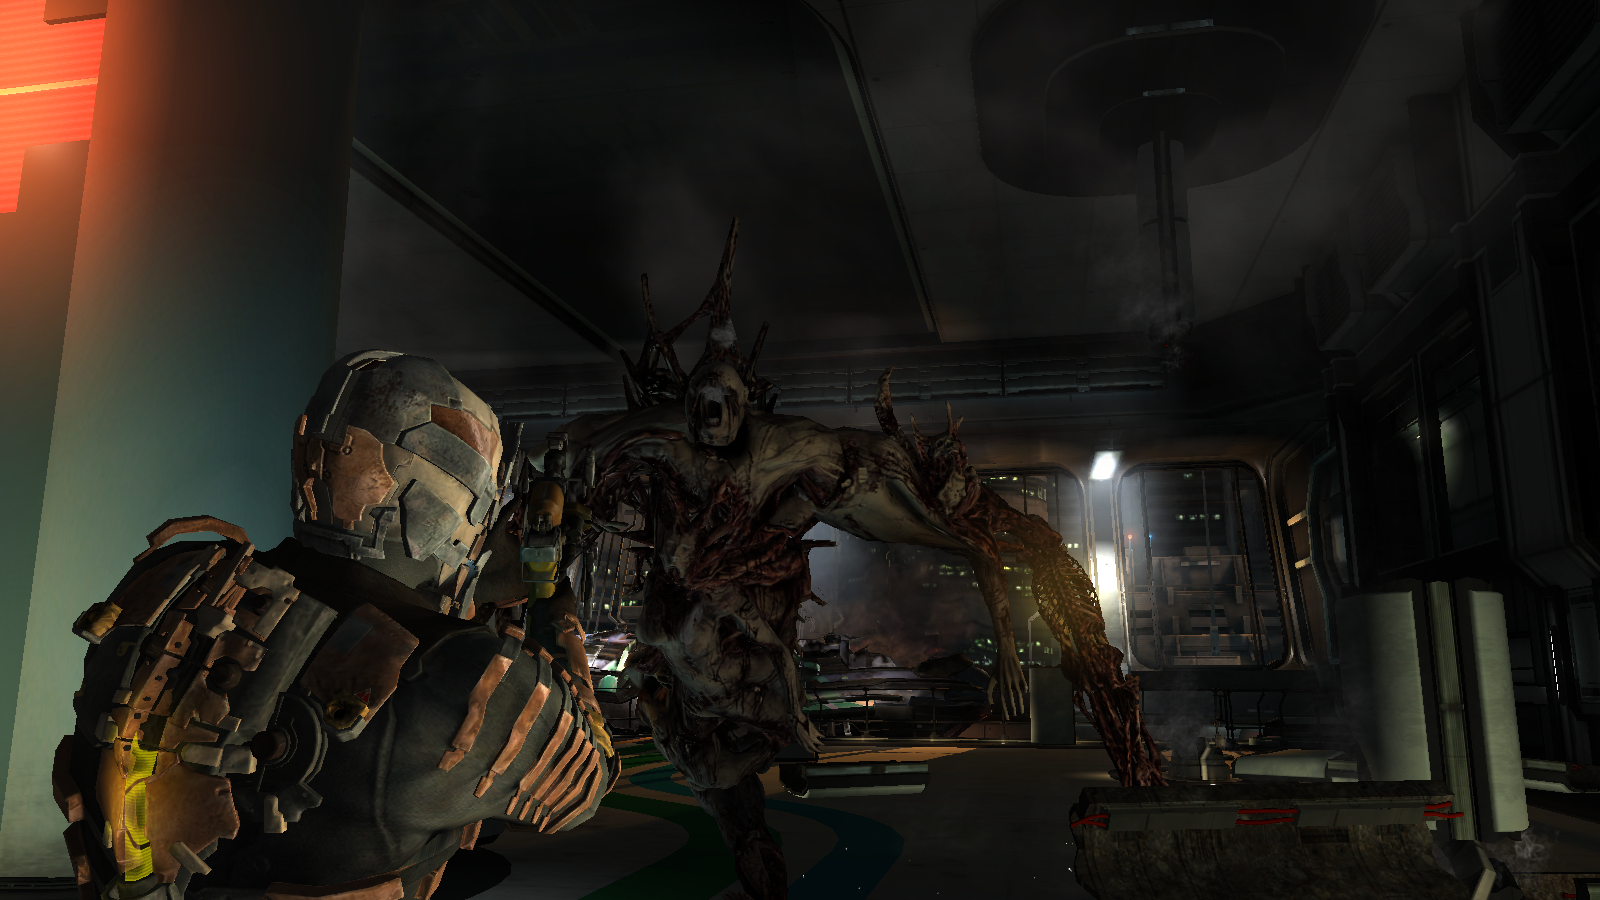 dead space 2 wallpaper hd widescreen game wallpaper backgrounds 1600x900